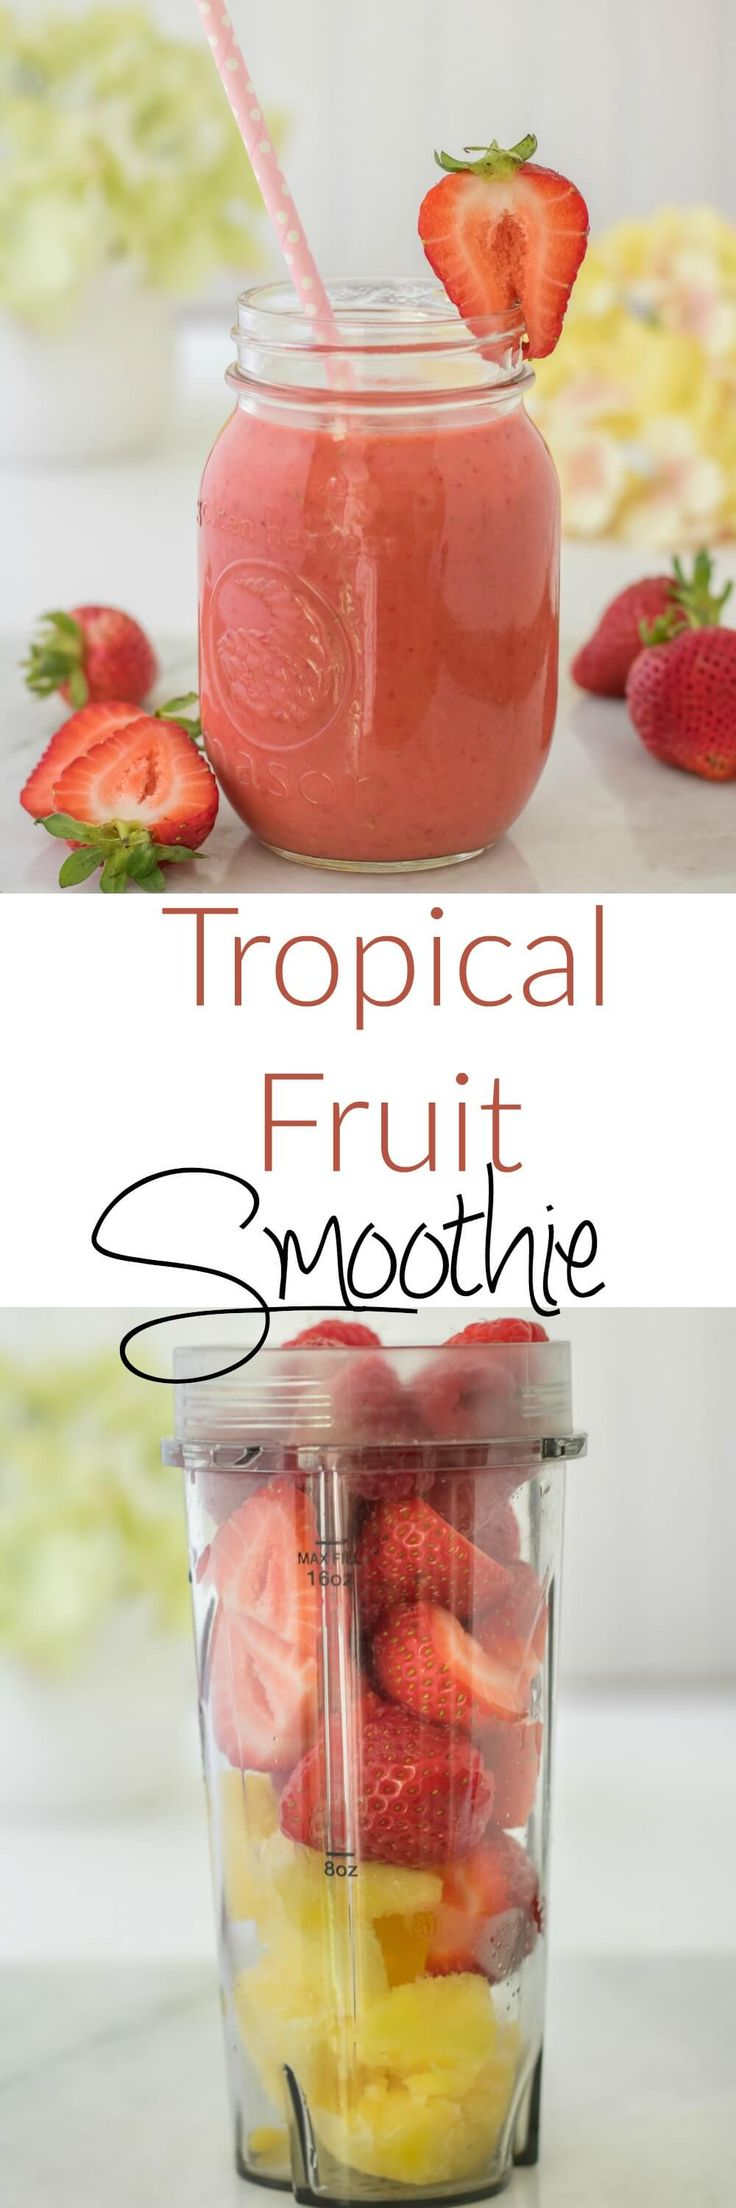 A blend of tropical fruits makes a refreshing fruit smoothie. This Tropical Fruit Smoothie is a healthy treat that you and your kids can enjoy without any guilt and help get in your fruit intake!